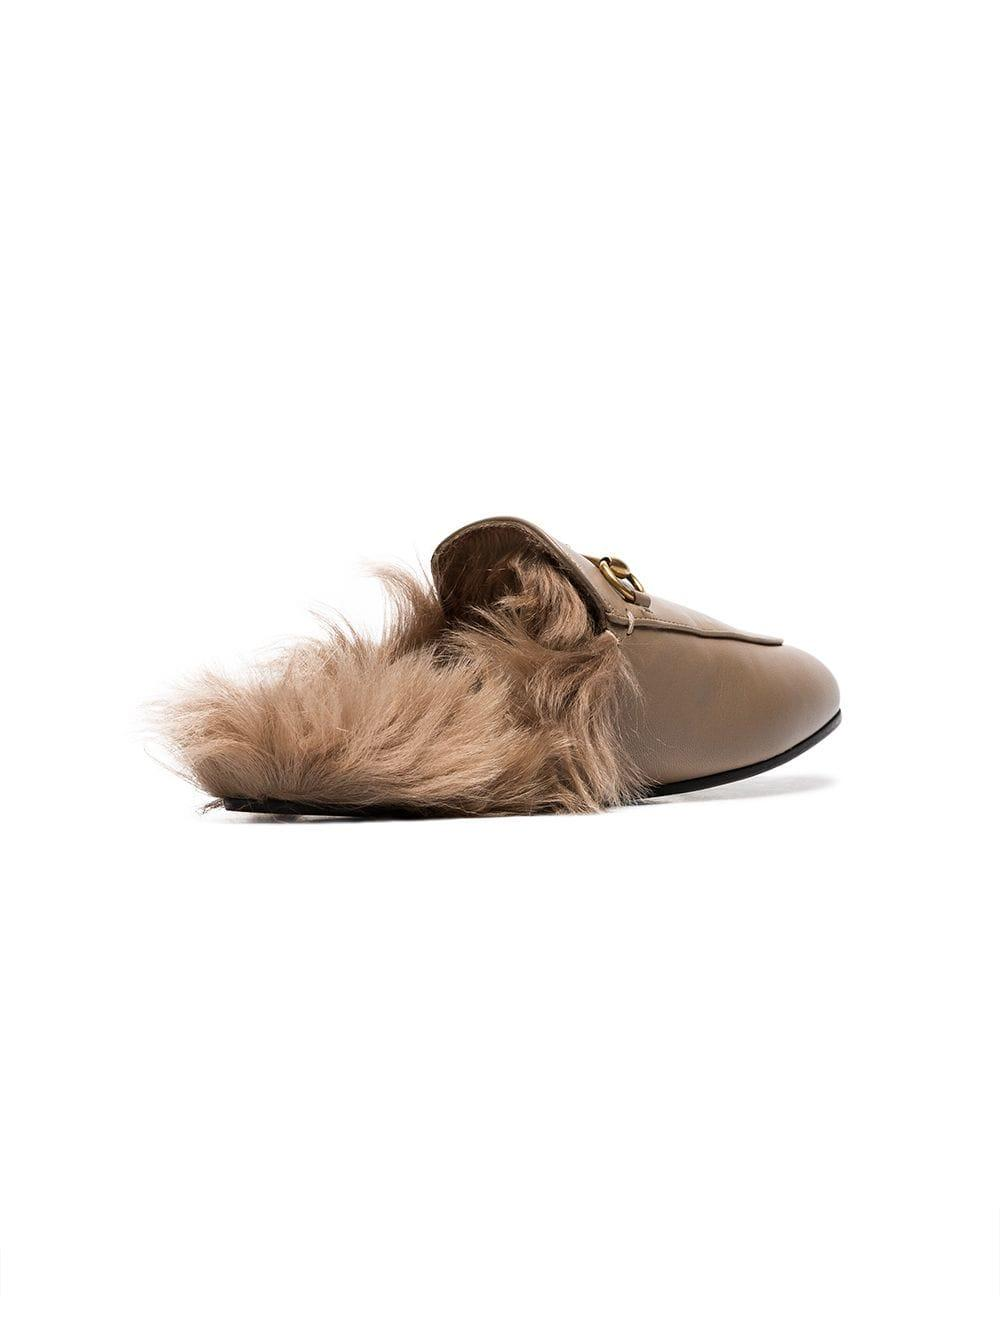 060393fd2147 Gucci - Brown Beige Princetown Flat Leather And Shearling Slippers - Lyst.  View fullscreen